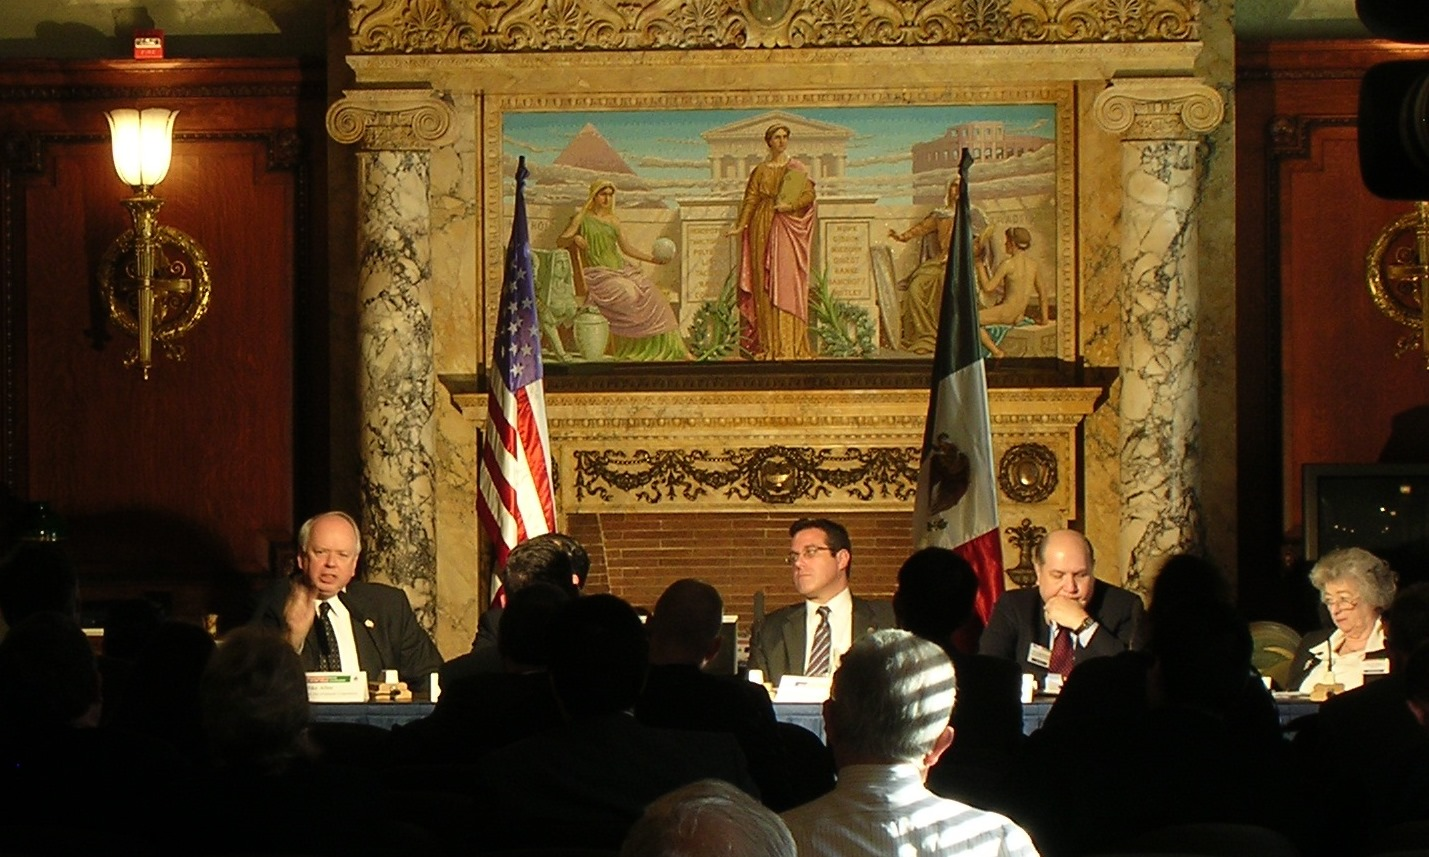 Conference panel in the Library of Congress